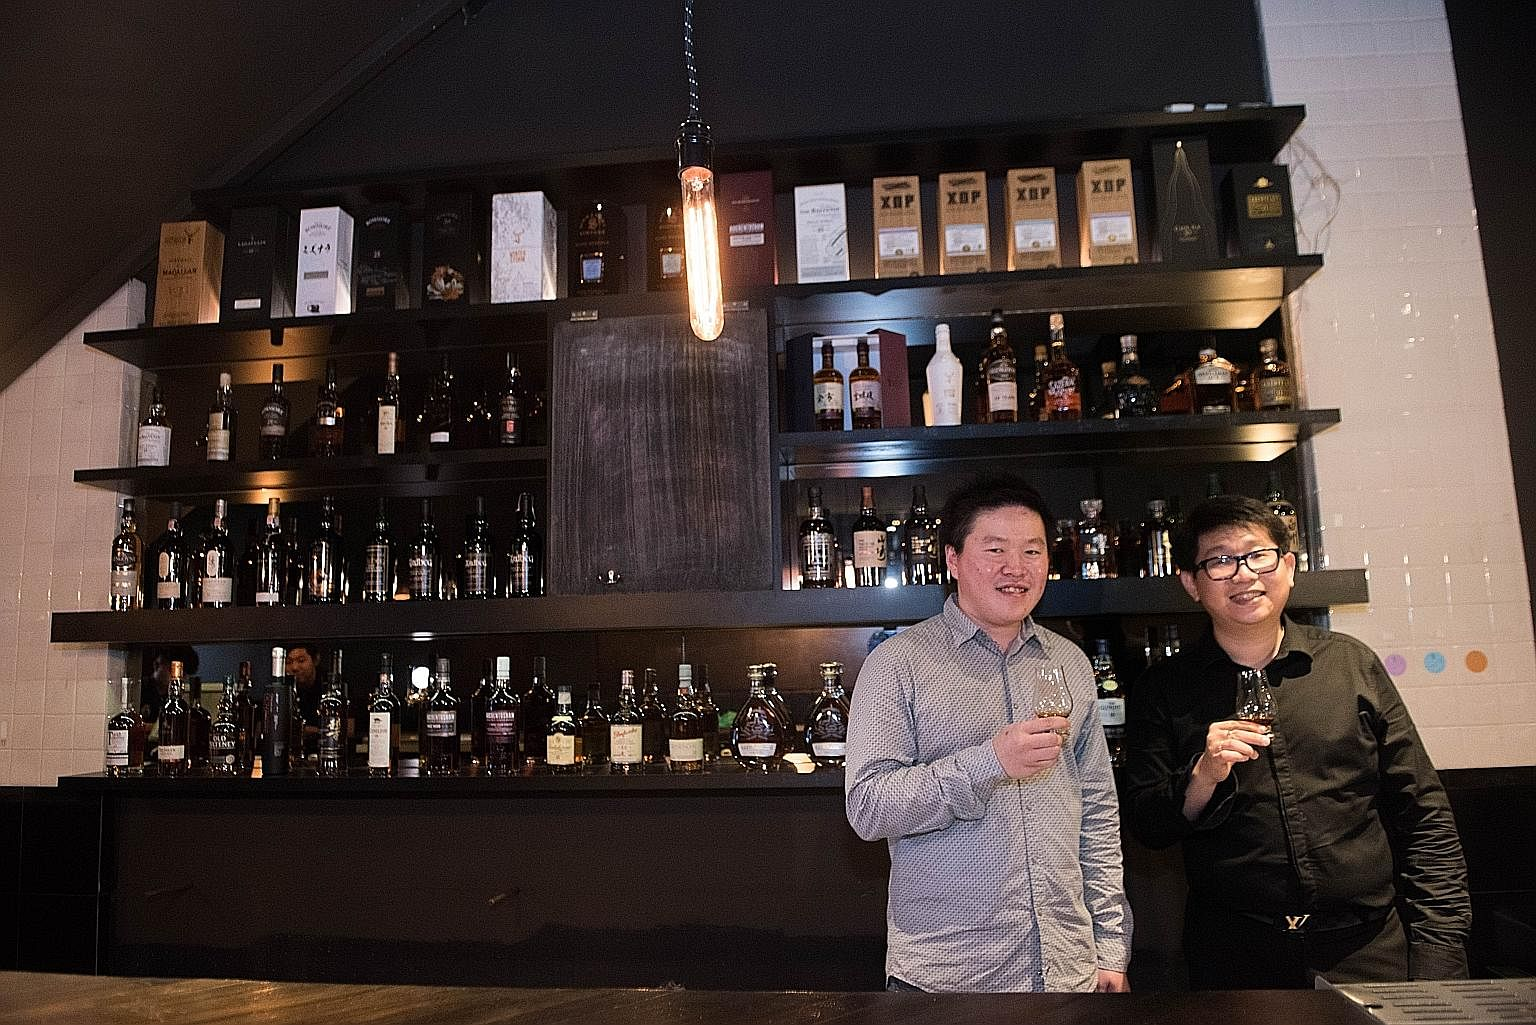 The Cooperage co-owners Paul Tan (left) and Ryan Wang want to make whisky as affordable as possible.